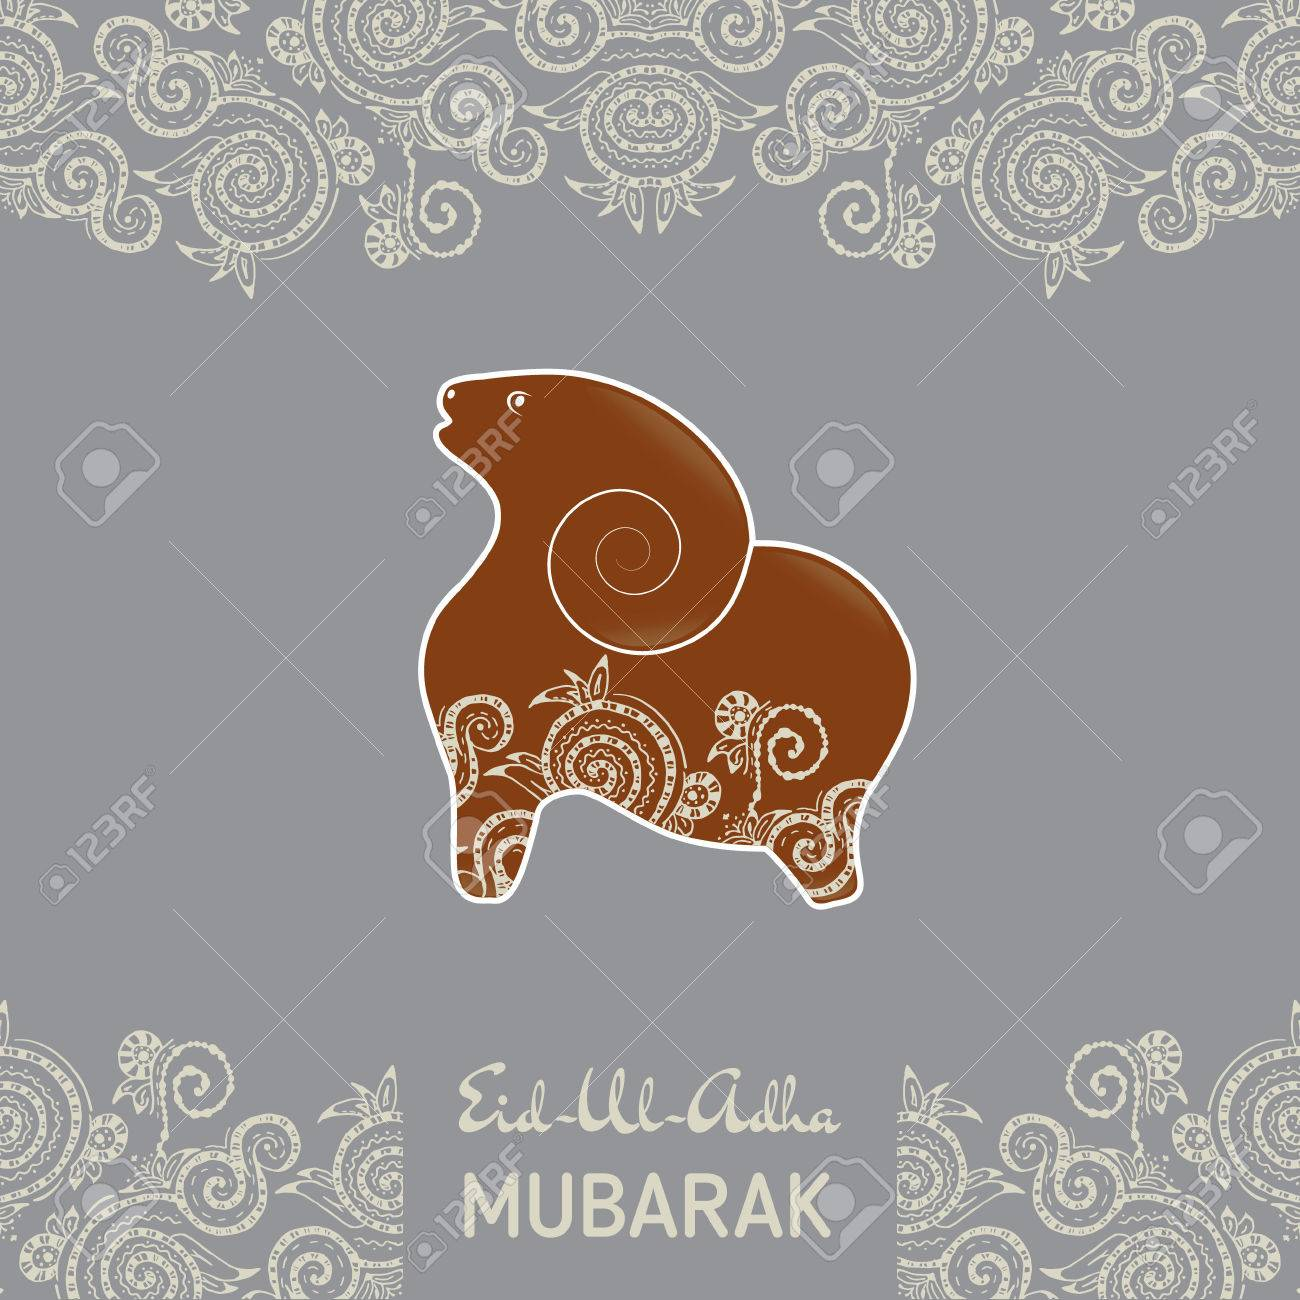 Greeting card template for muslim community festival eid al fitr greeting card template for muslim community festival eid al fitr mubarak with flat kristyandbryce Images